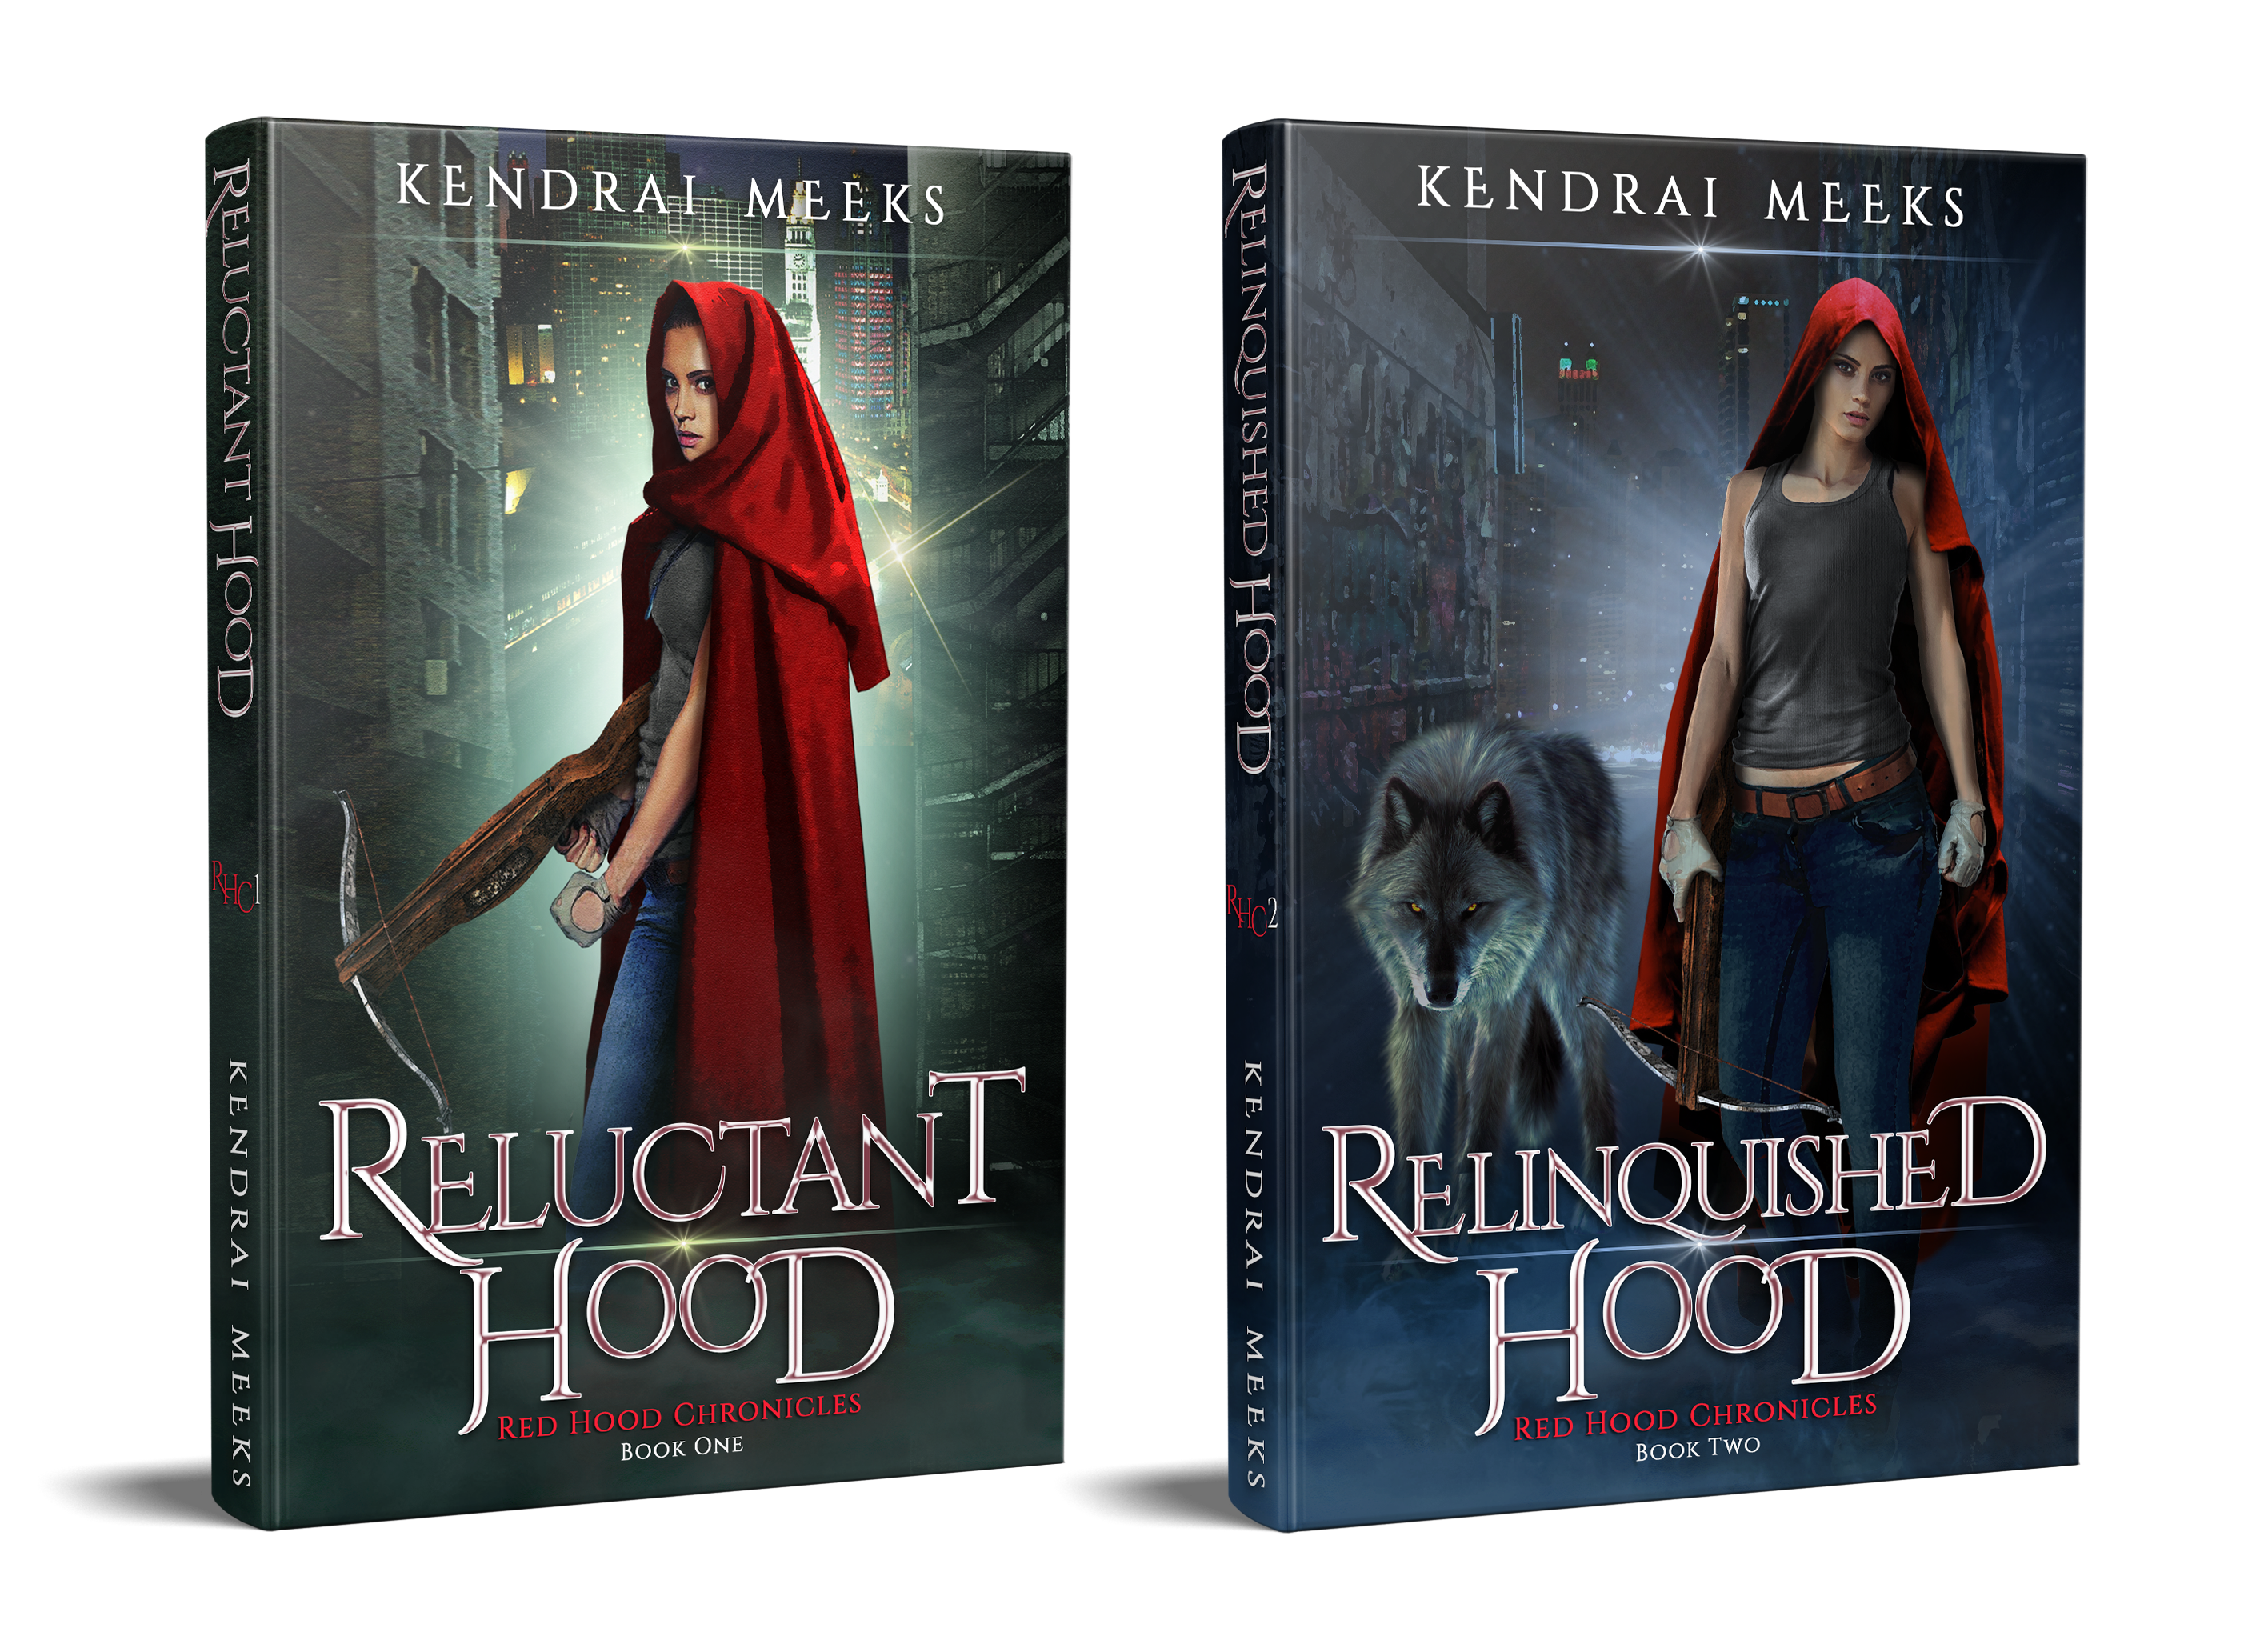 Red Hood Chronicles Book 2